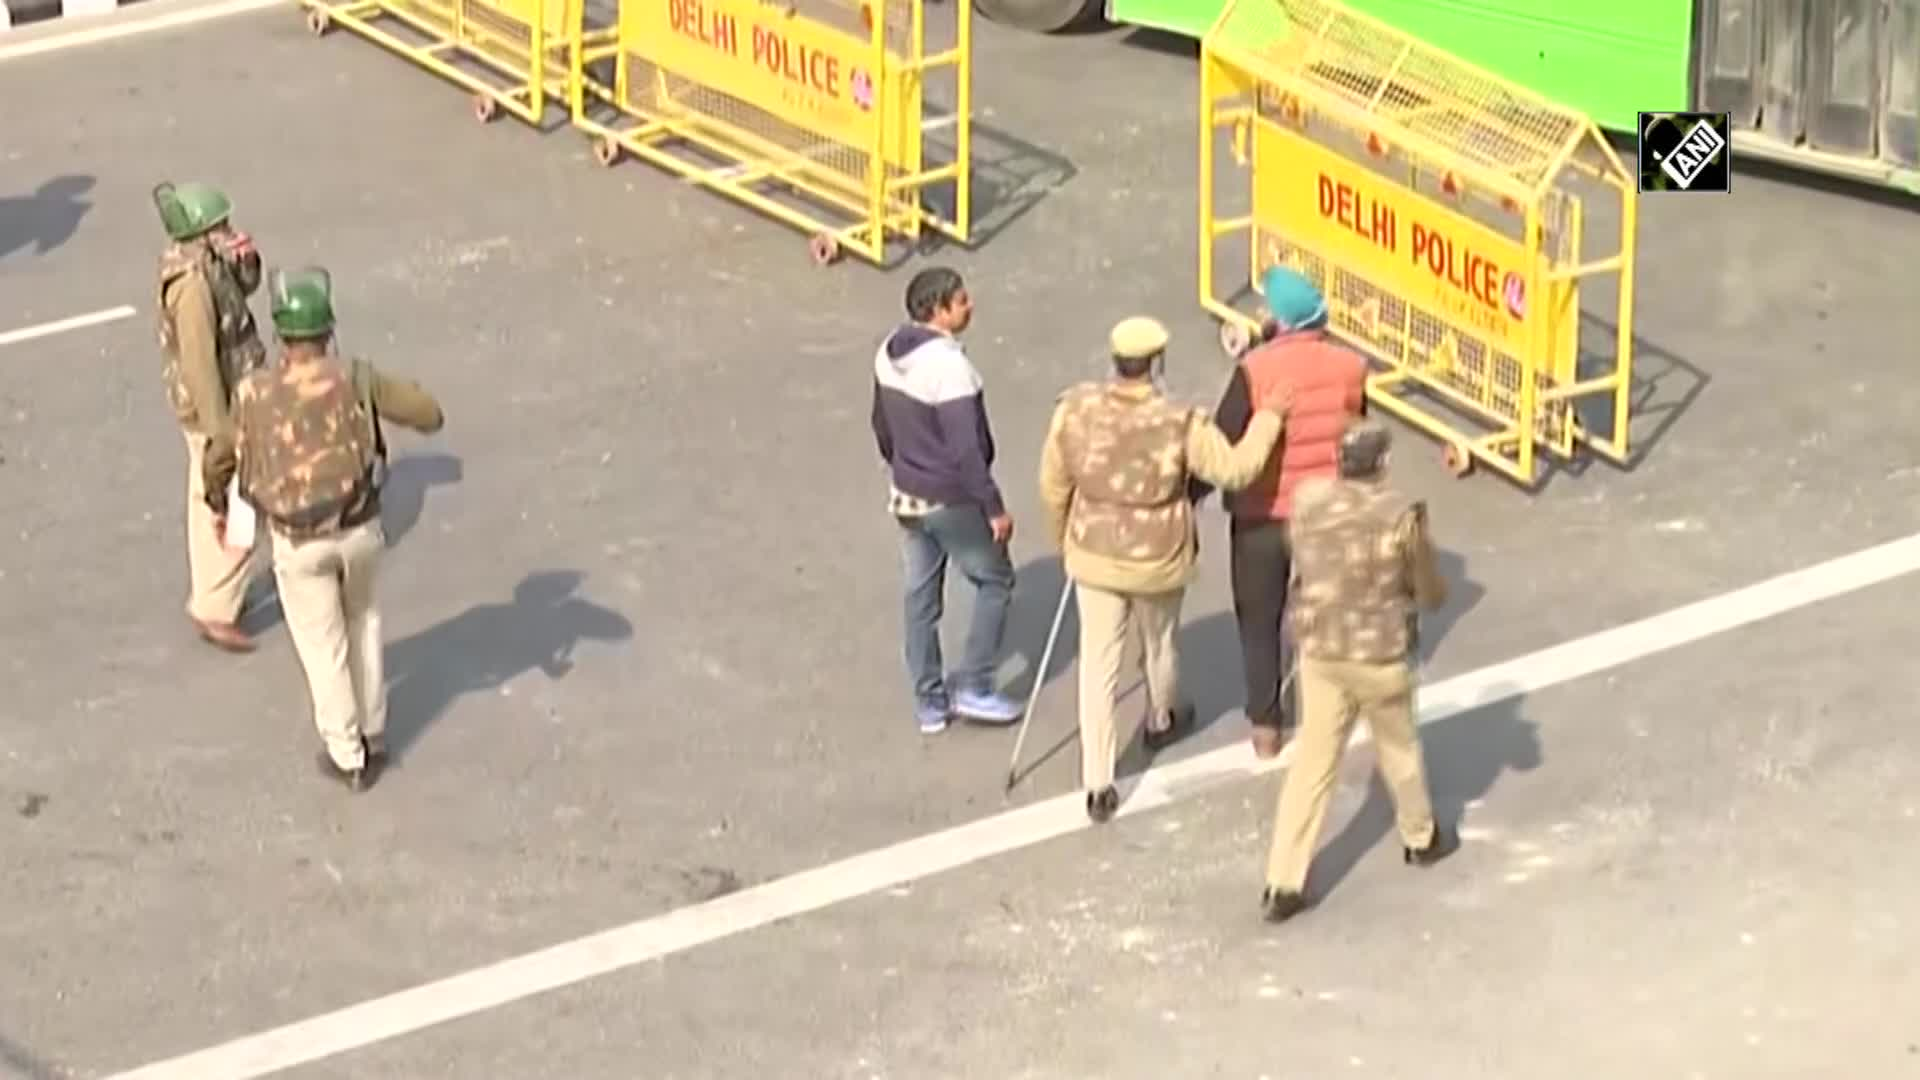 Tractor Rally: Protesters attack police personnel in Delhi's ITO